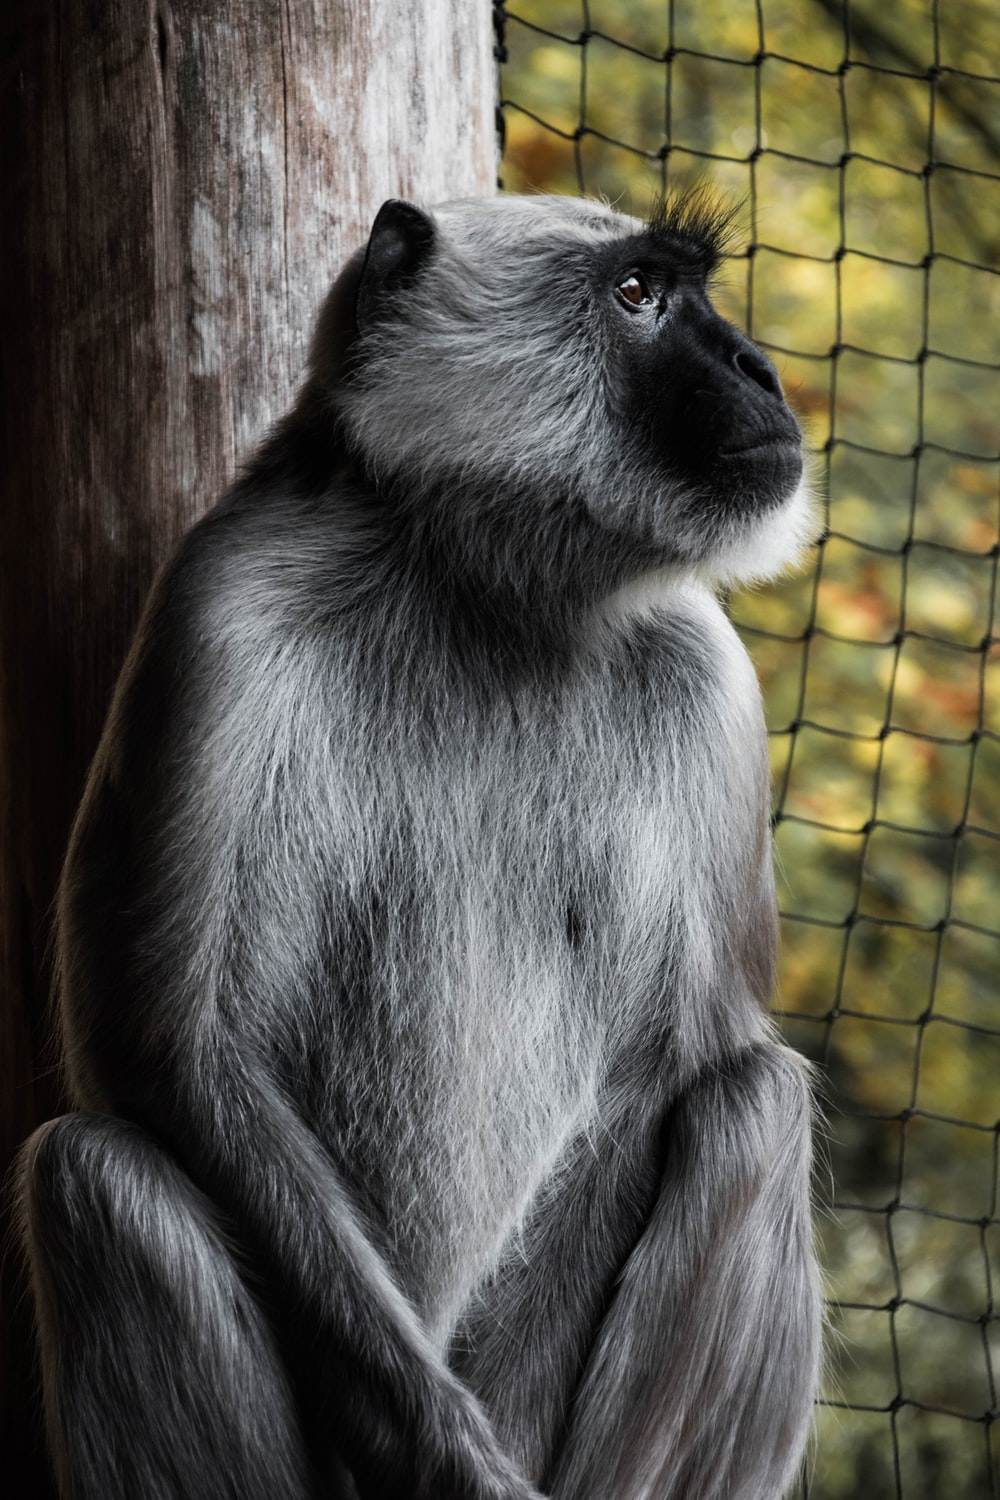 grey and black monkey sitting inside cage